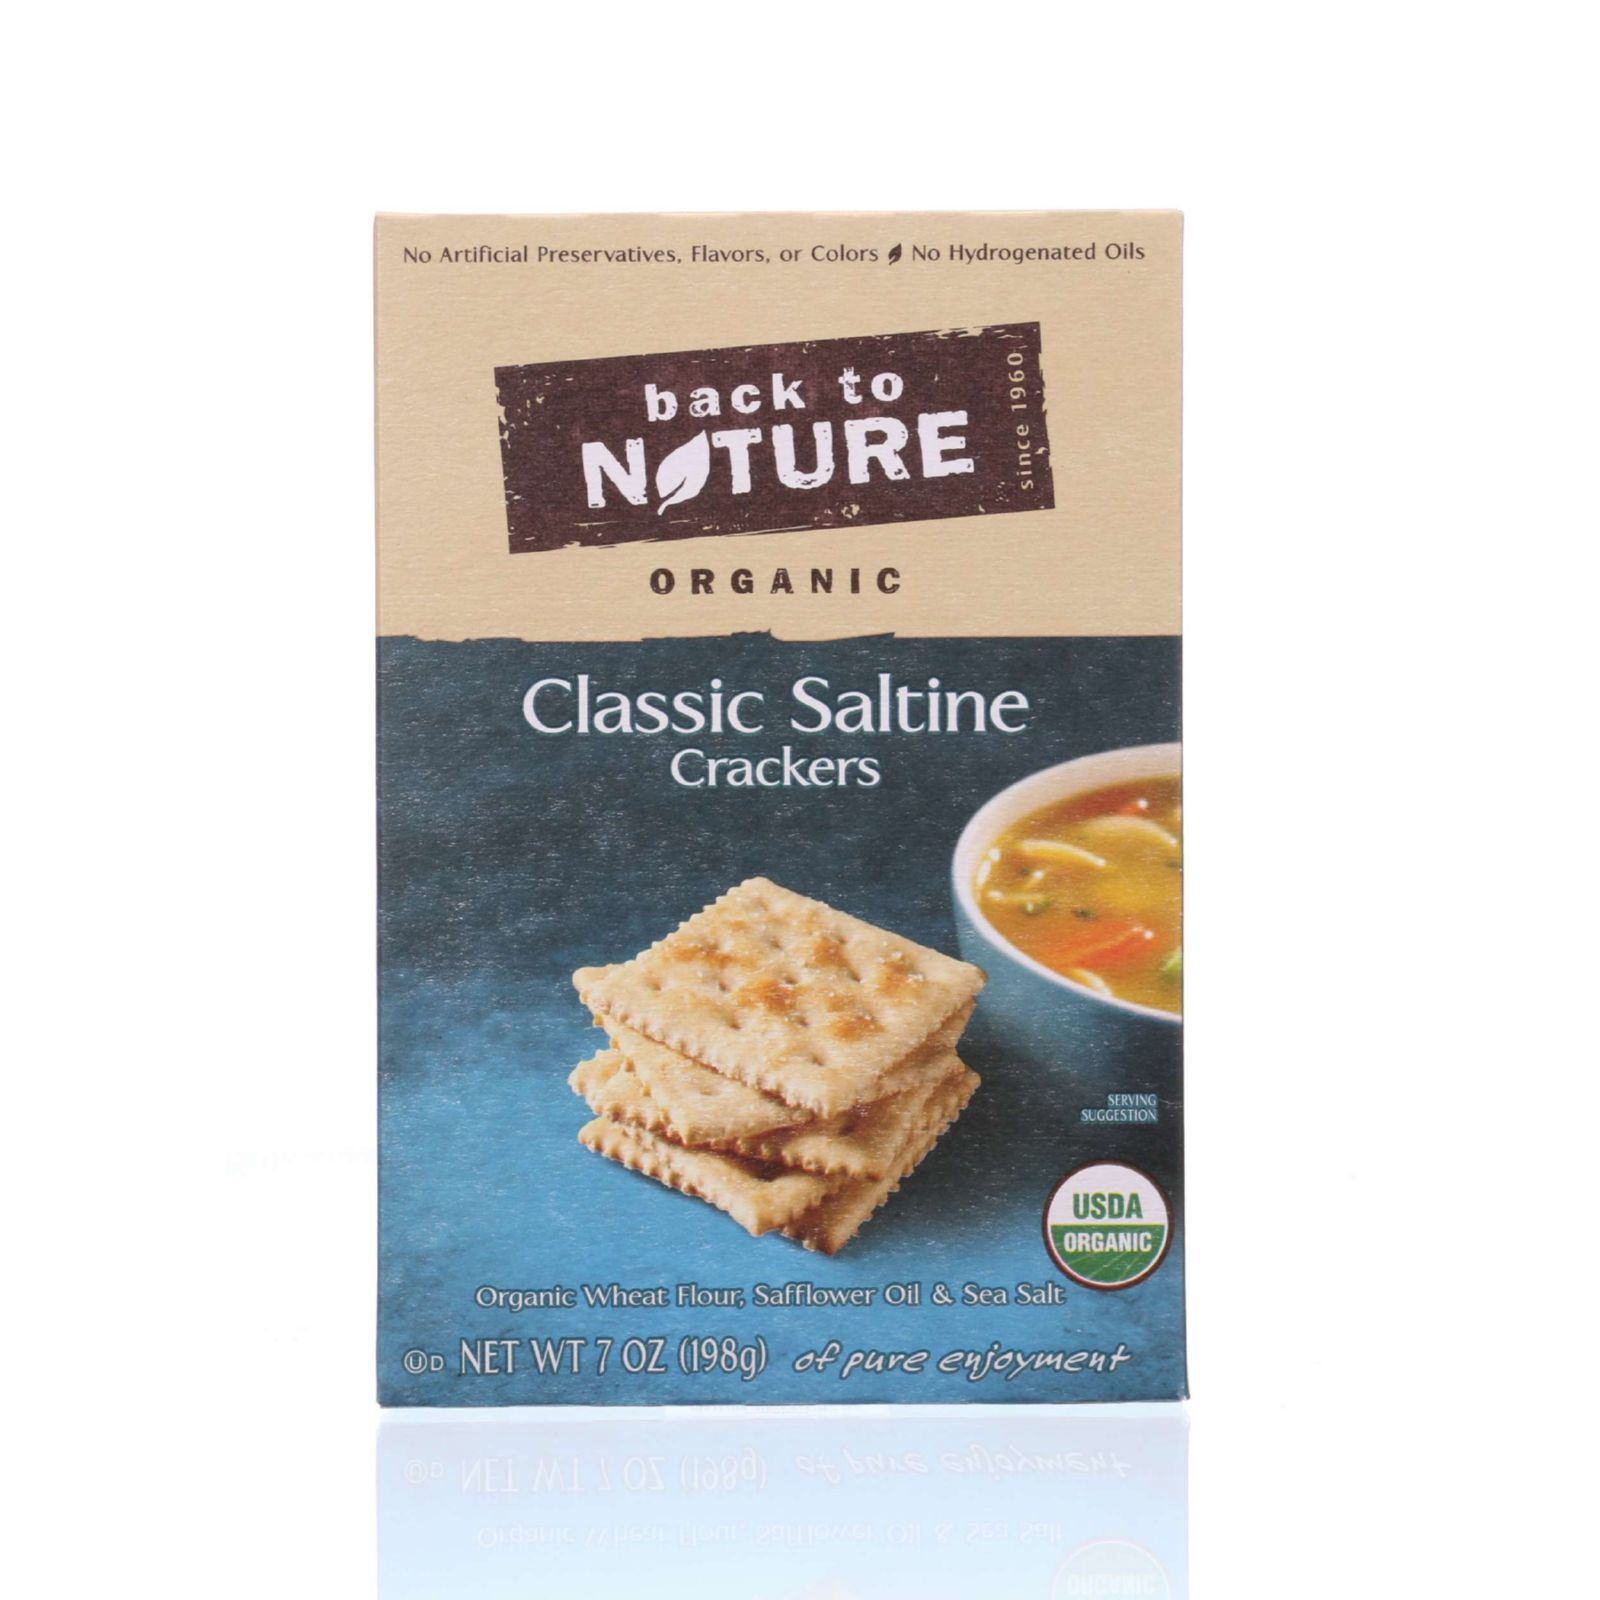 Back To Nature Crackers - Organic - Classic Saltine - 7 oz - case of 6